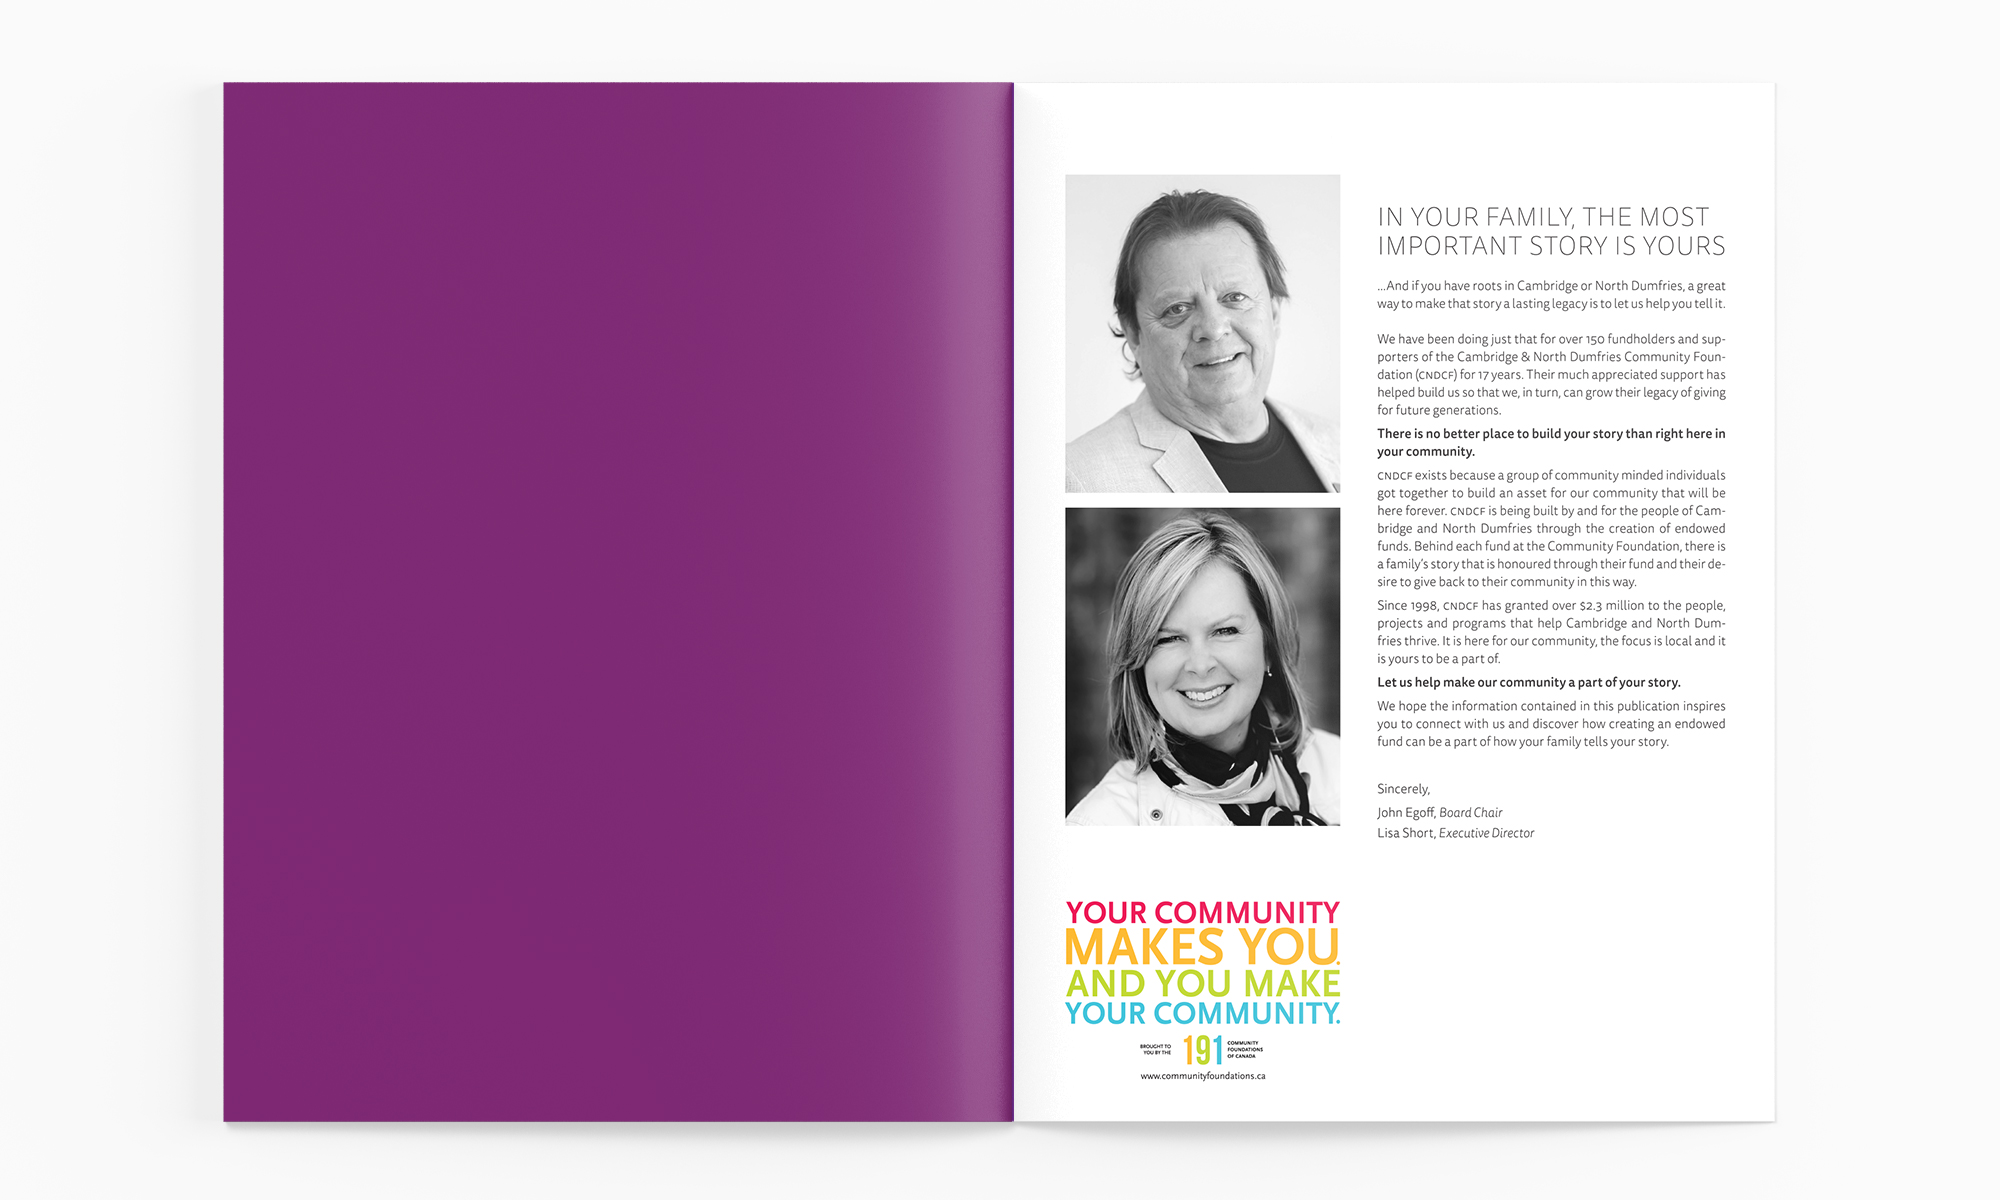 CambridgeandNorthDumfriesCommunityFoundation_Ebbnflowcreative_AnnualReport_Spread1.jpg